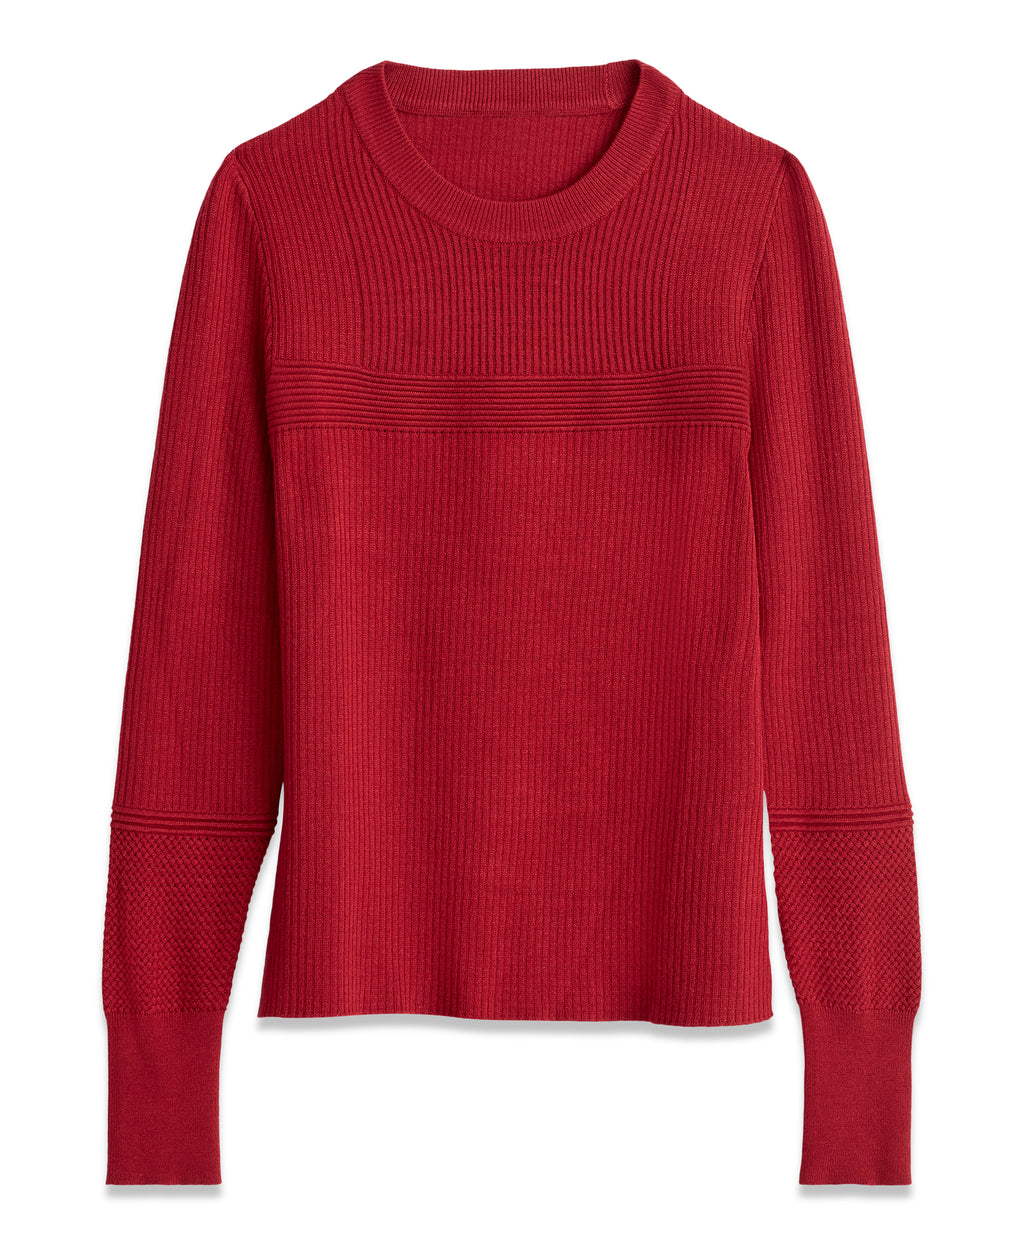 Ruby SWEATER | Ruby SWEATER